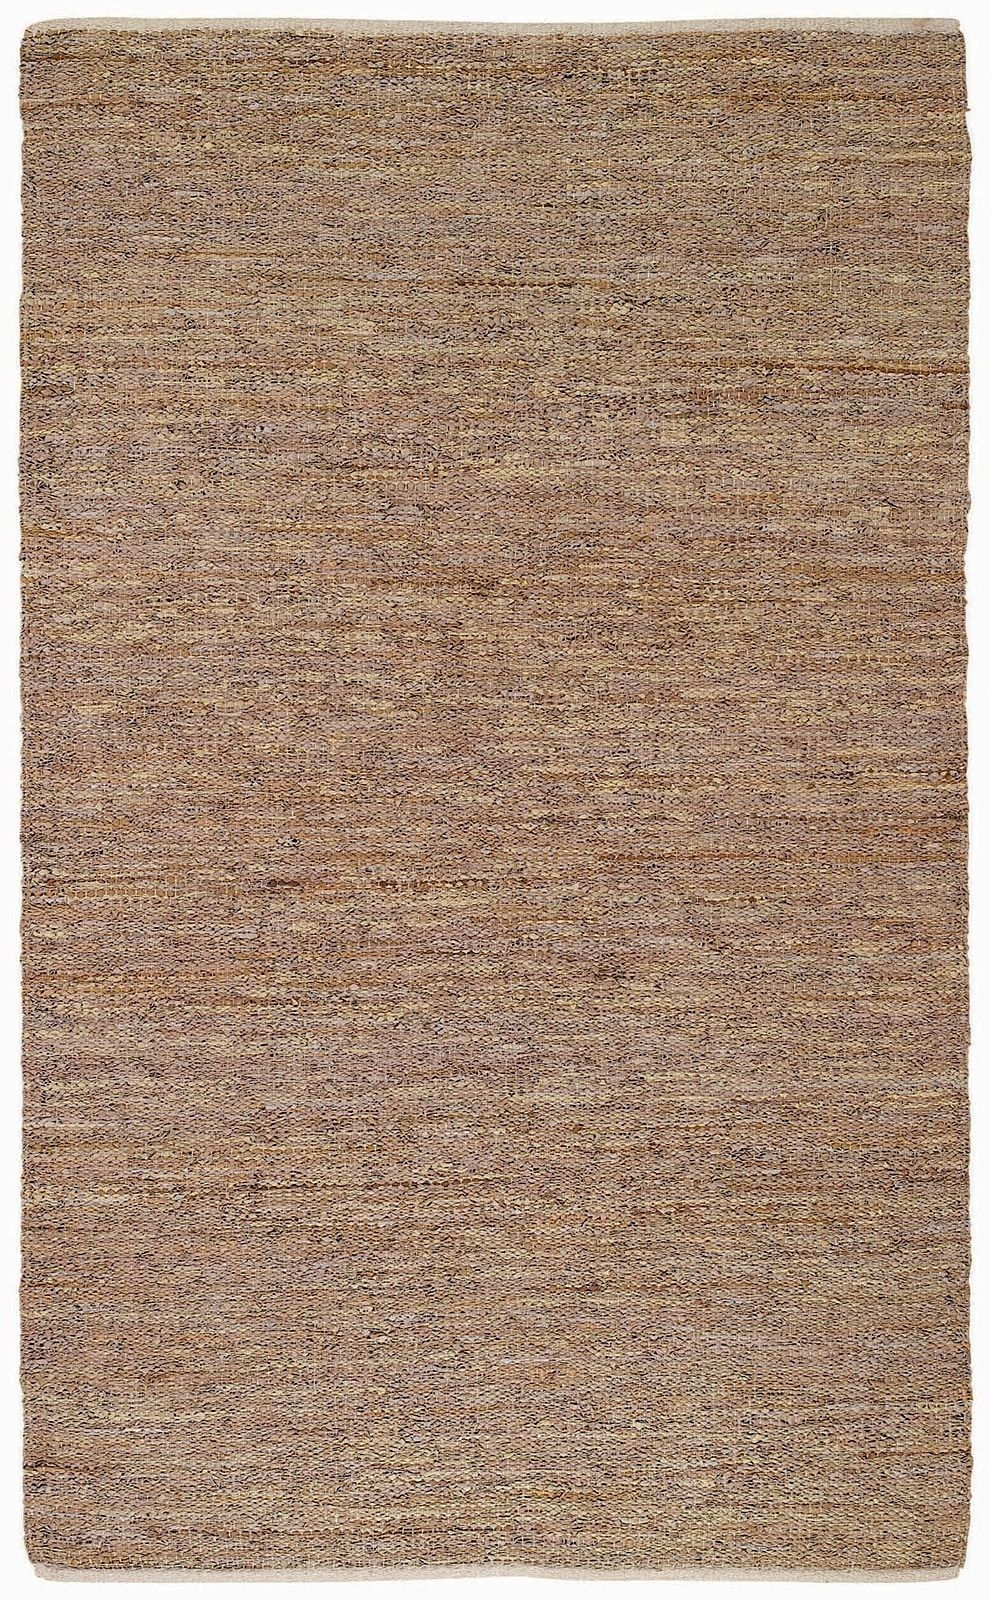 capel zions view contemporary area rug collection